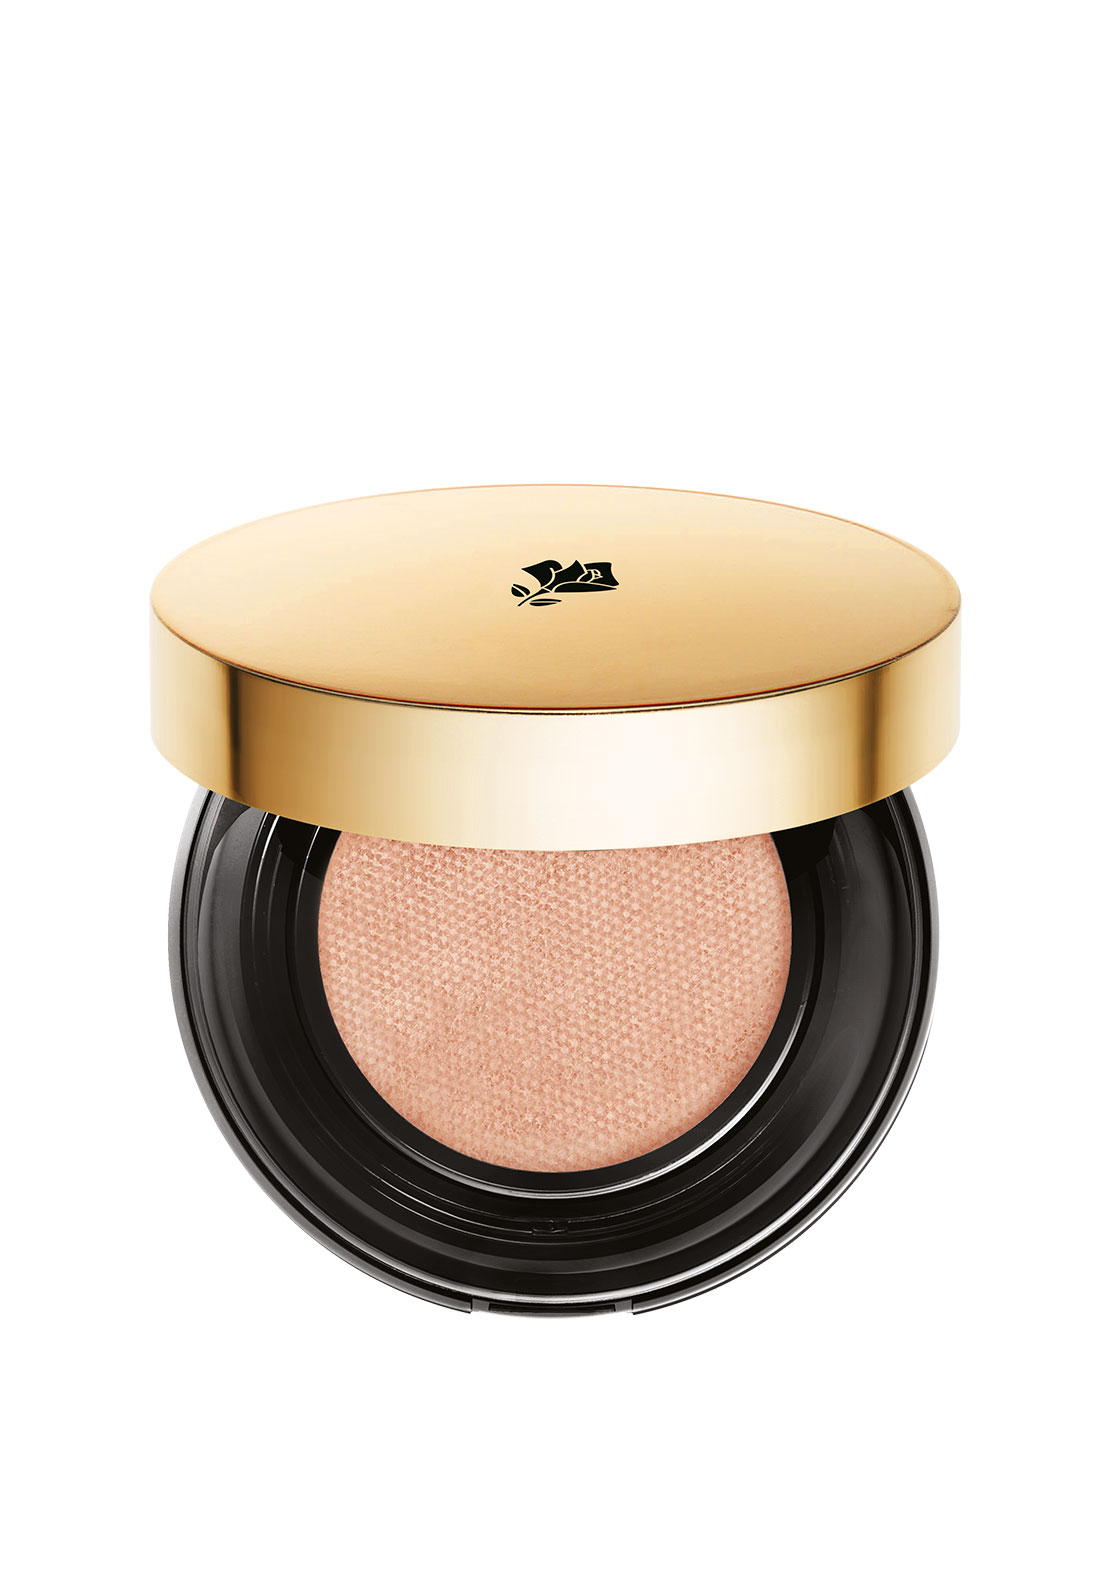 Lancome Teint Idole Ultra Cushion Compact Foundation, Albatre